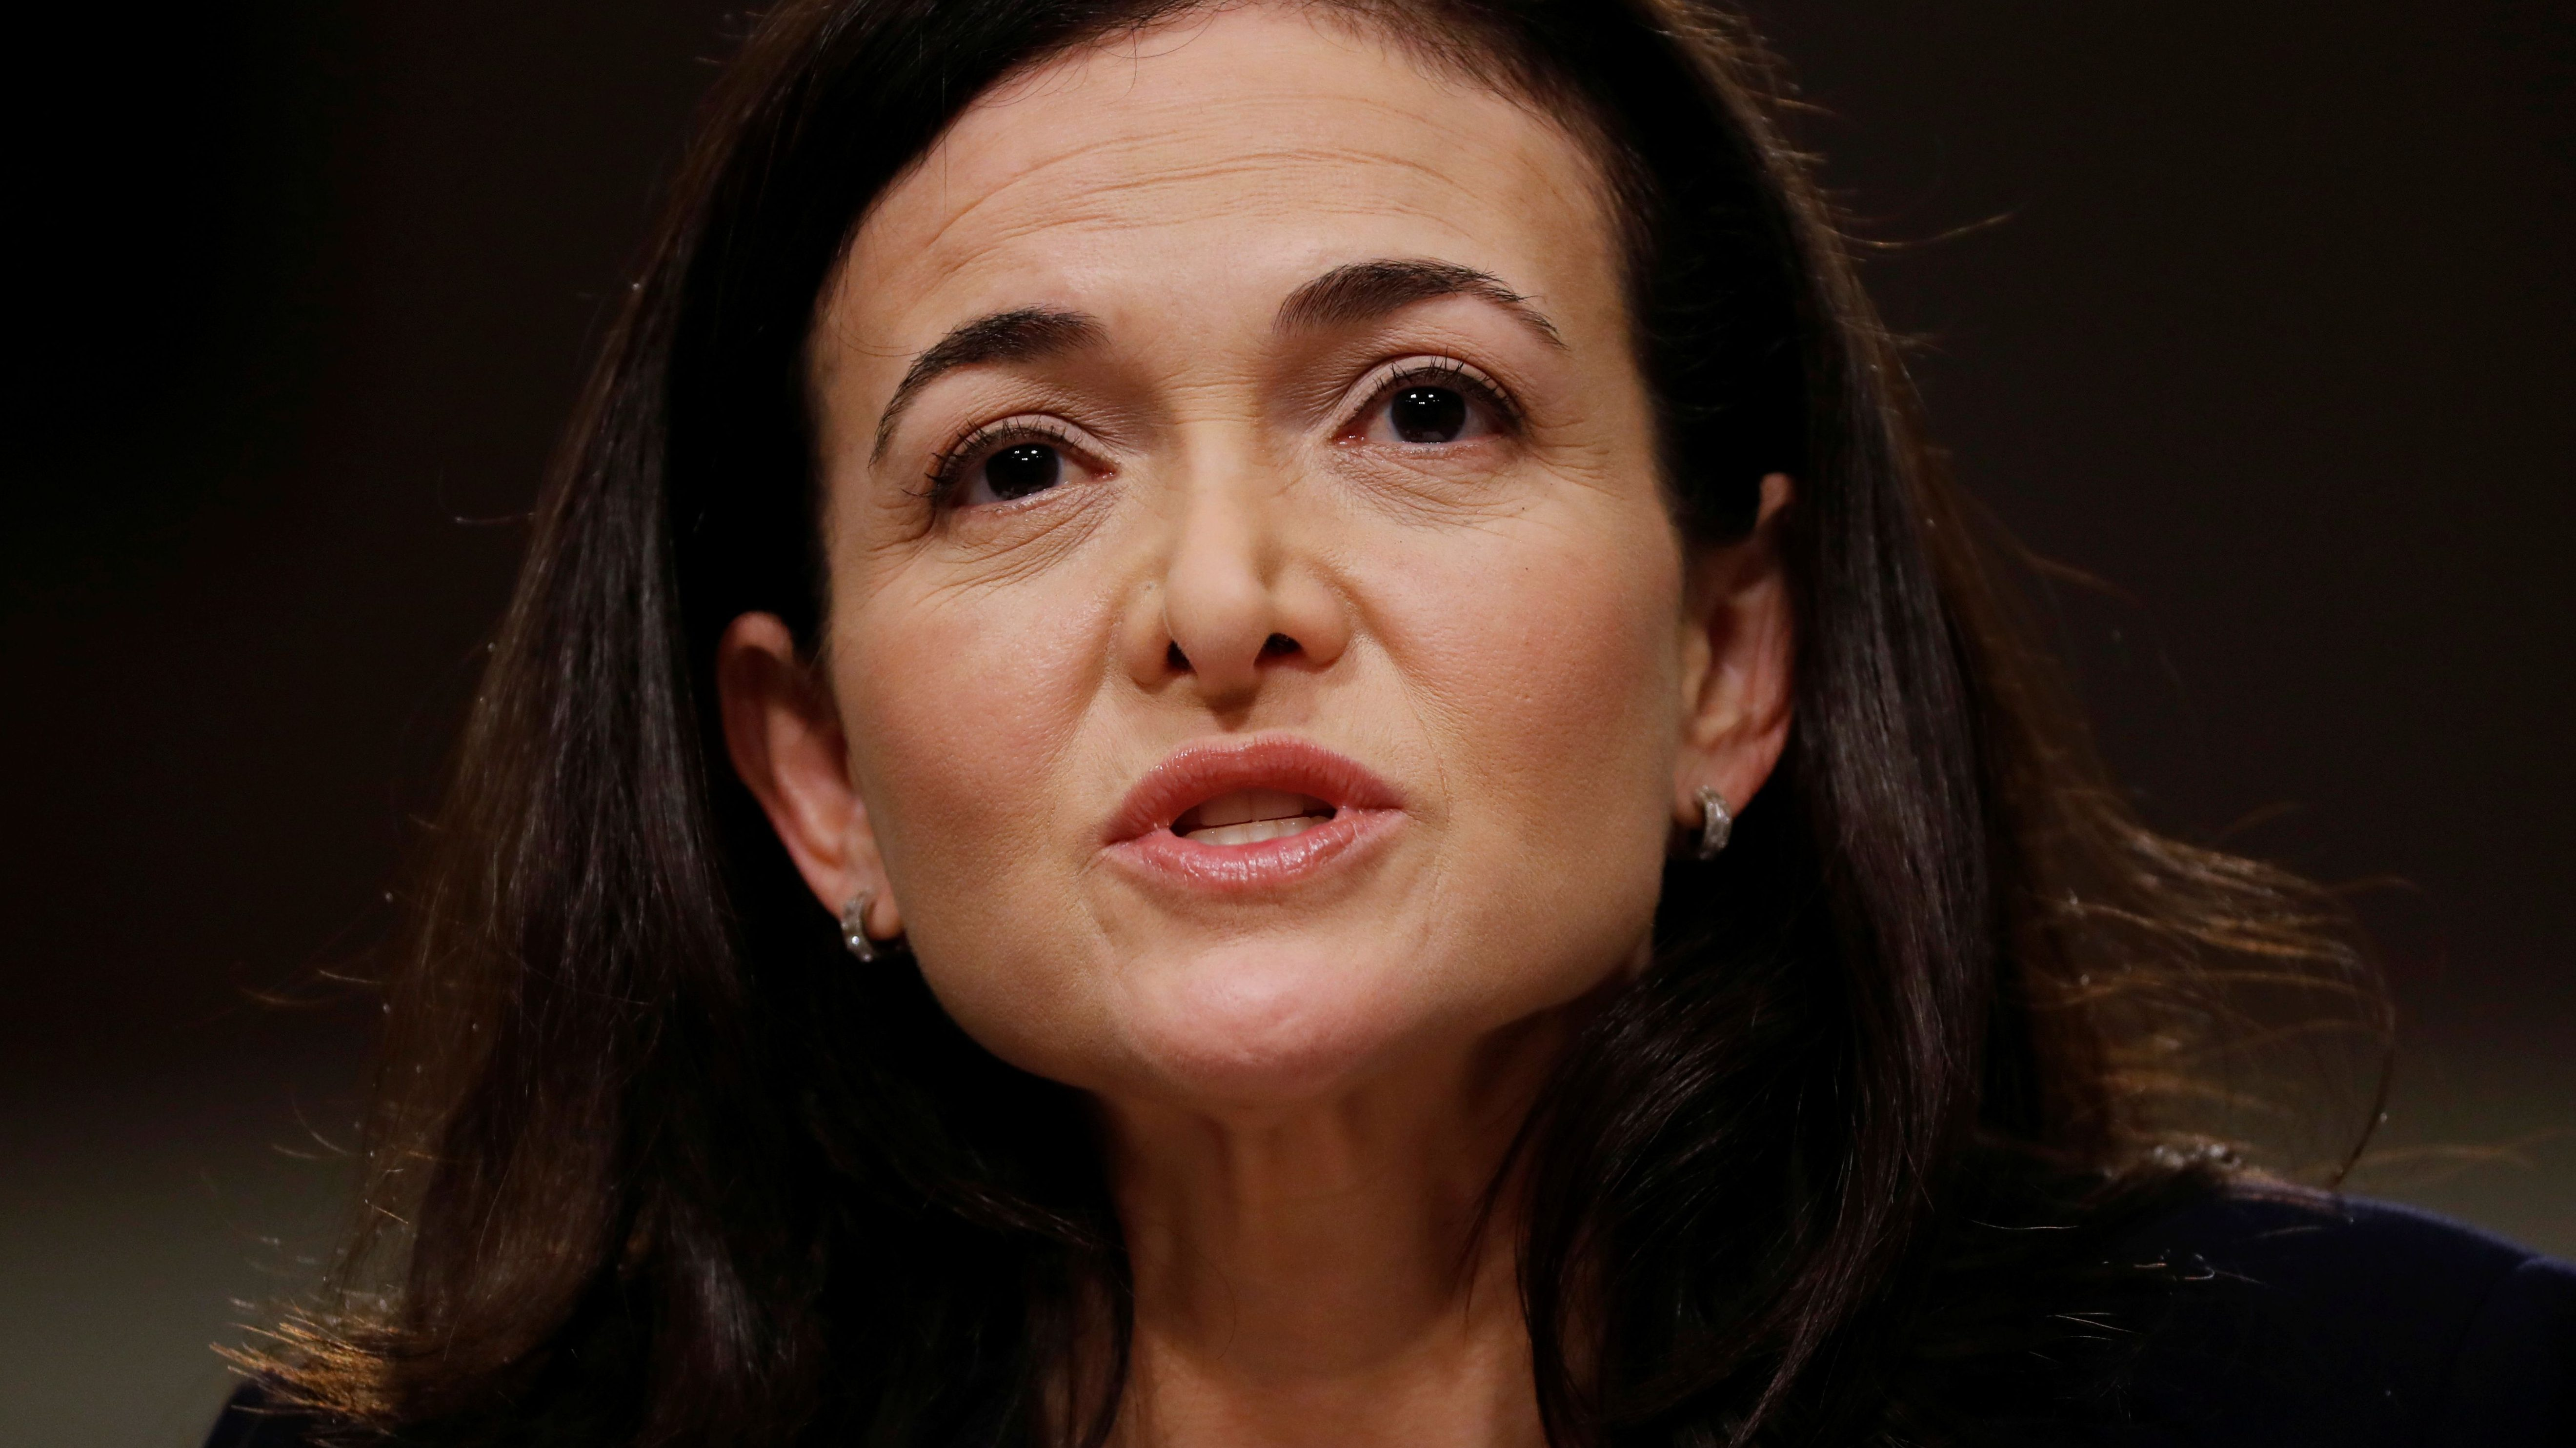 Facebook COO Sheryl Sandberg testifies before a Senate Intelligence Committee hearing on foreign influence operations on social media